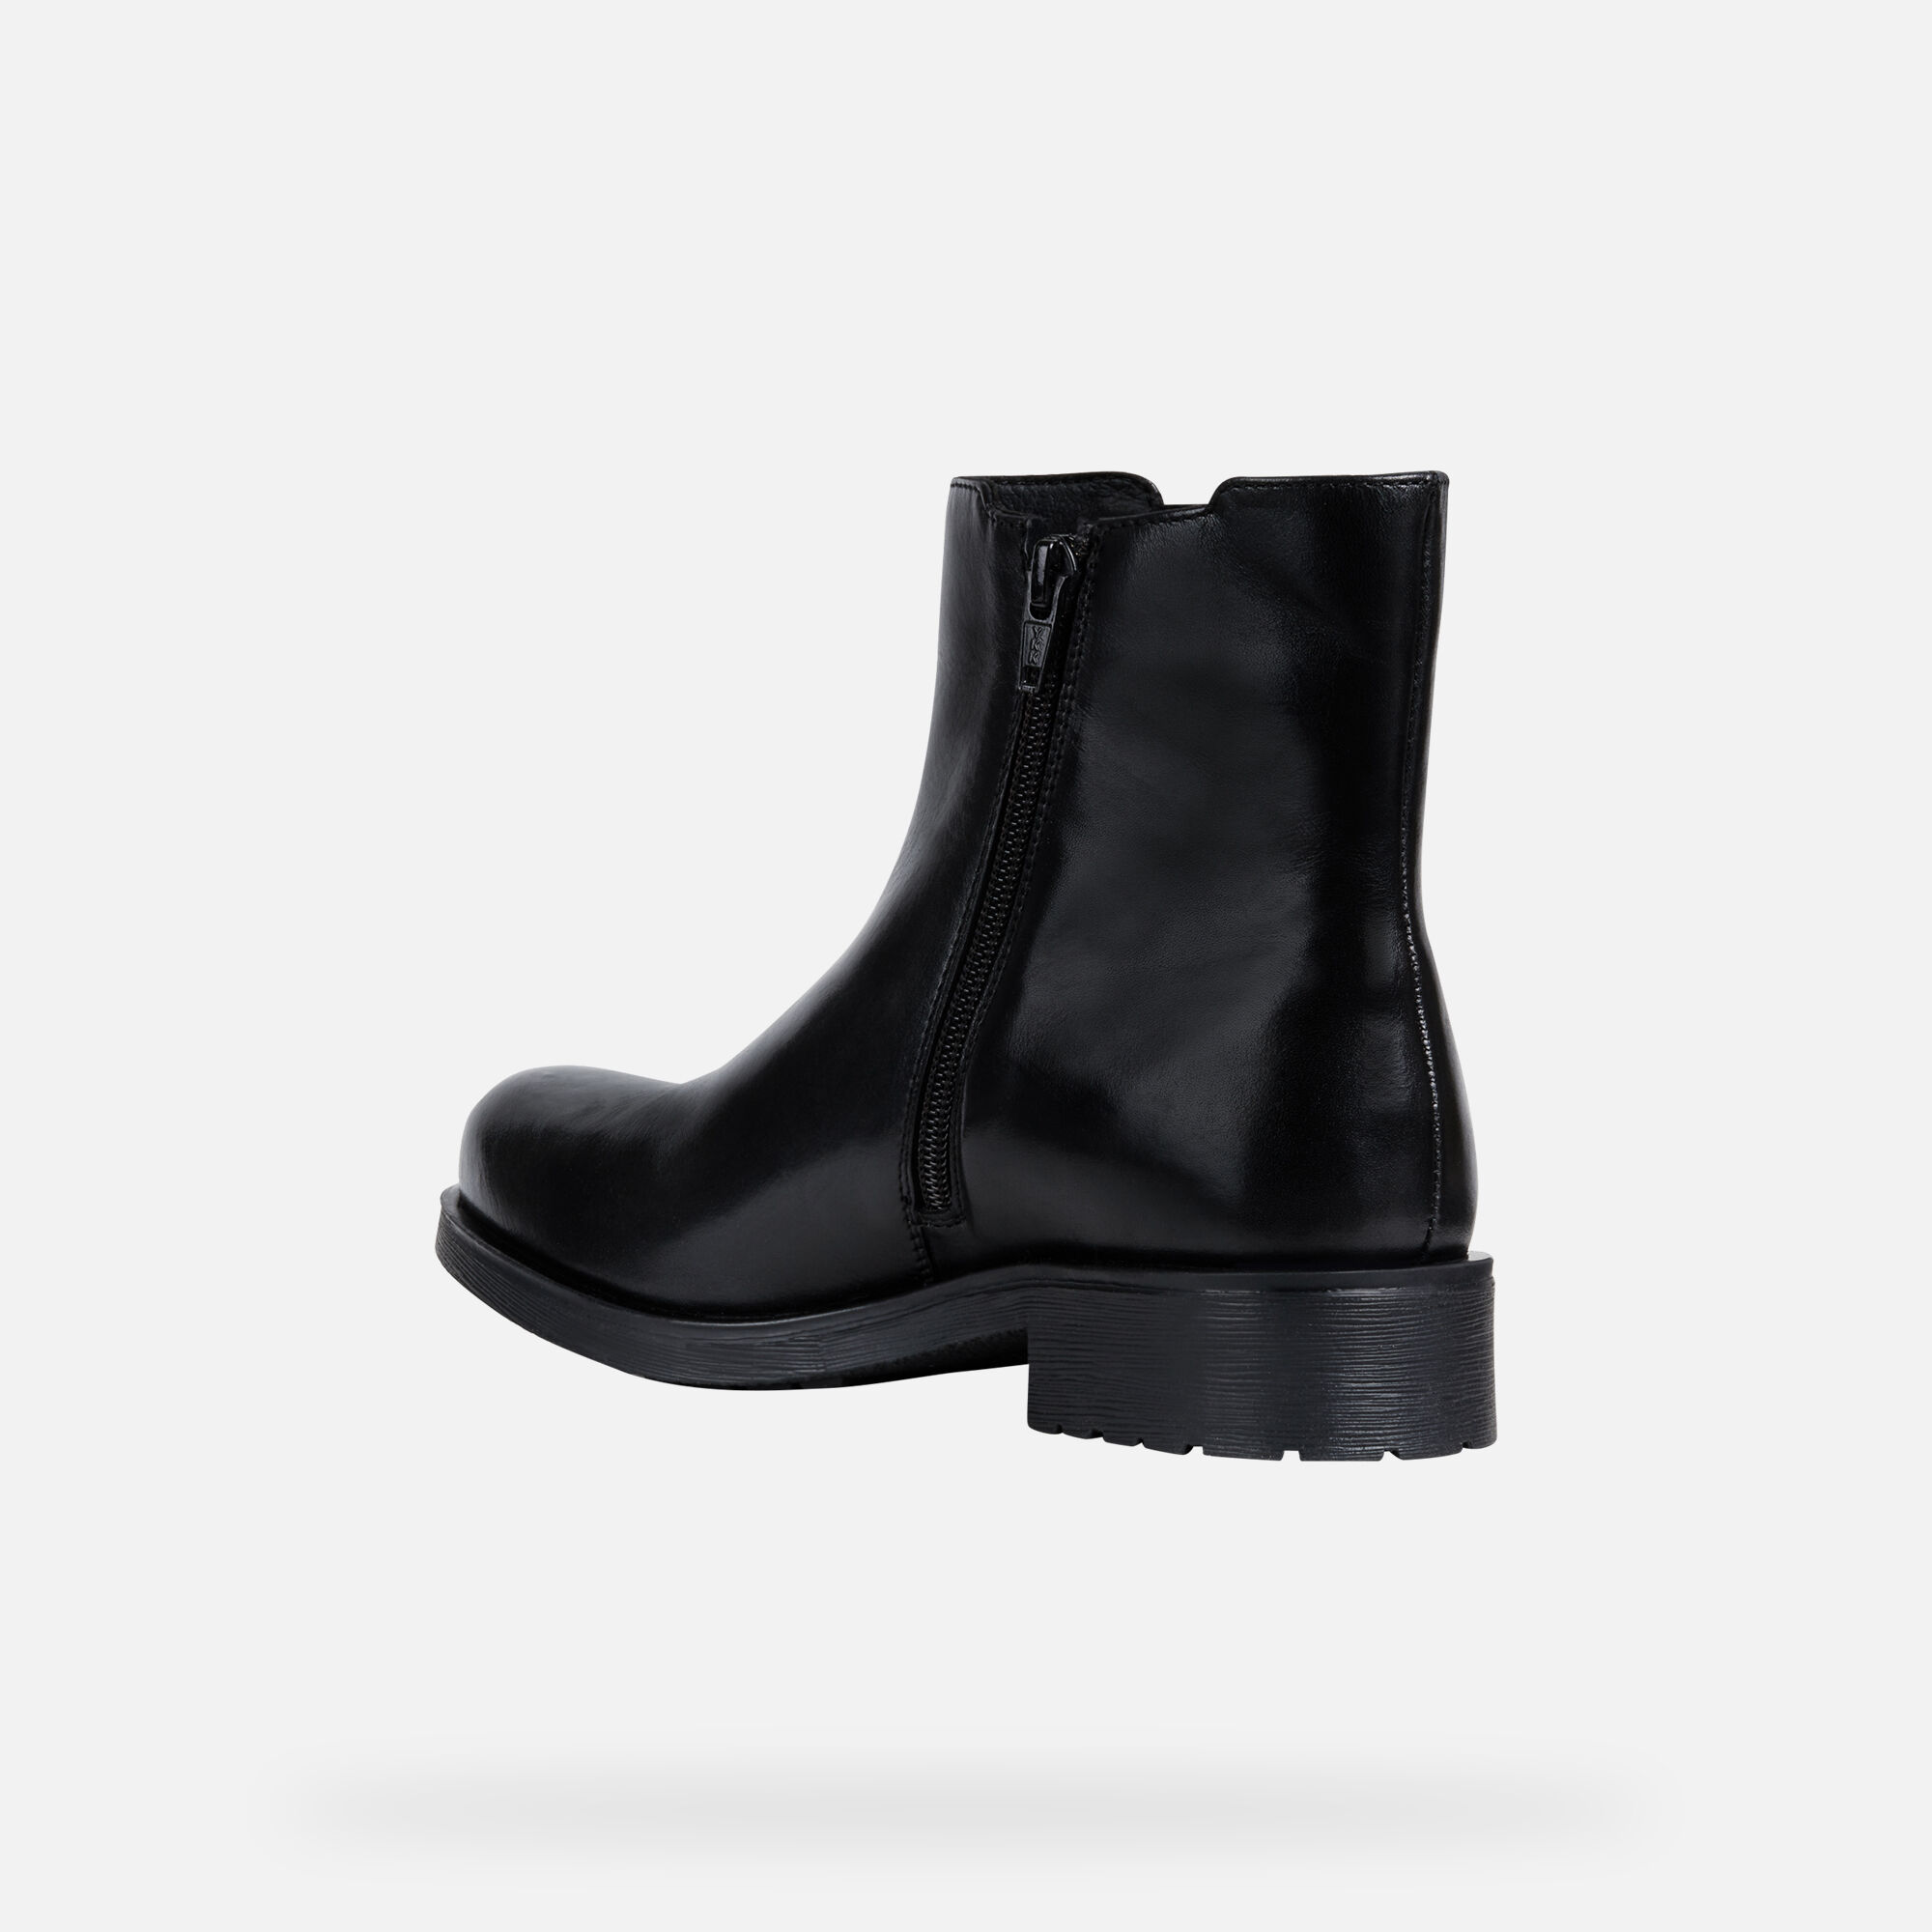 Geox DONNA NEW VIRNA: Black and White Woman Ankle Boots | Geox